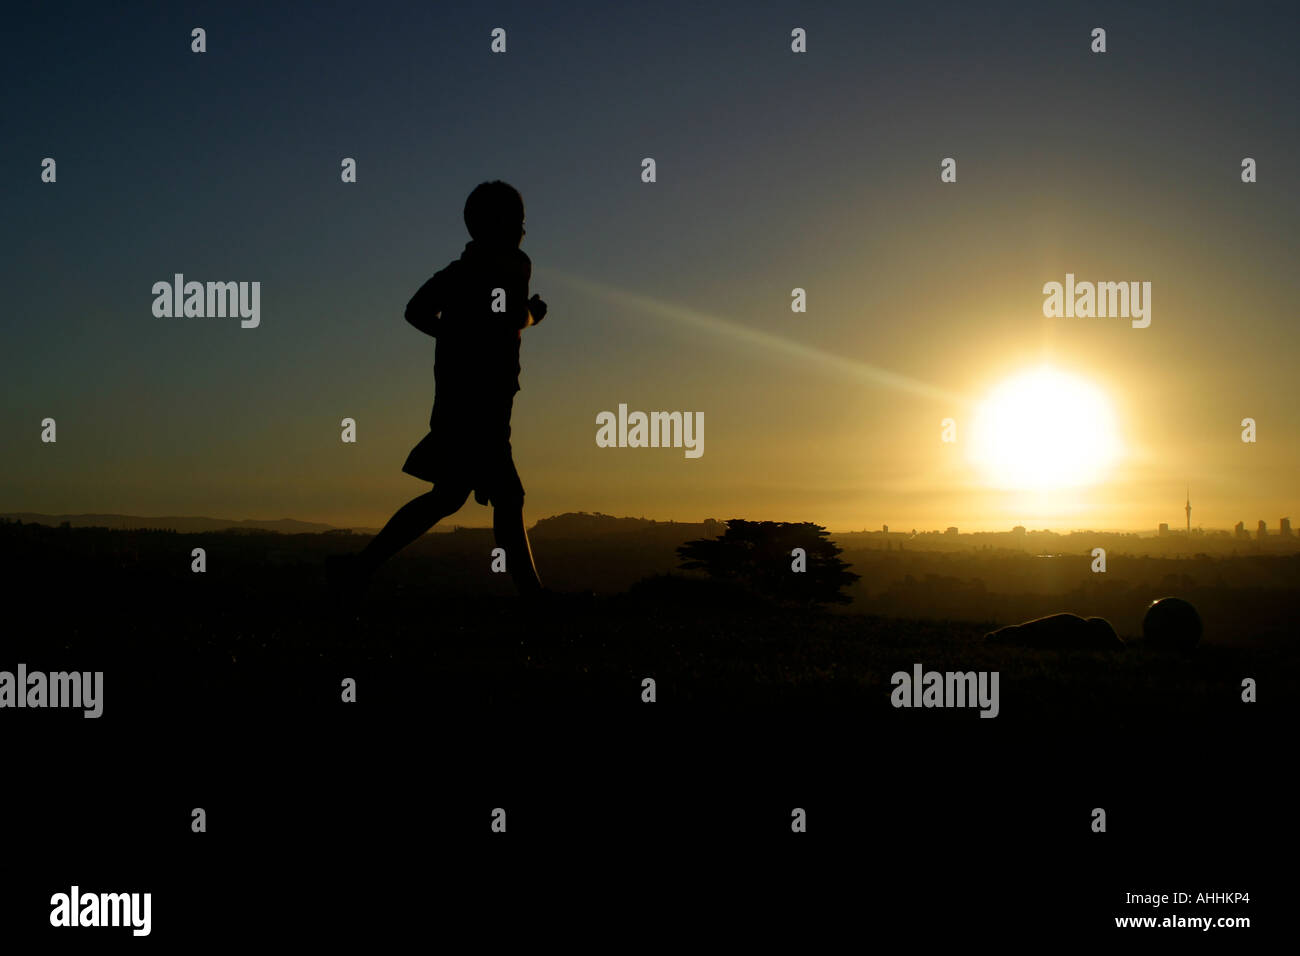 Boy playing soccer in Auckland New Zealand at Sunset - Stock Image